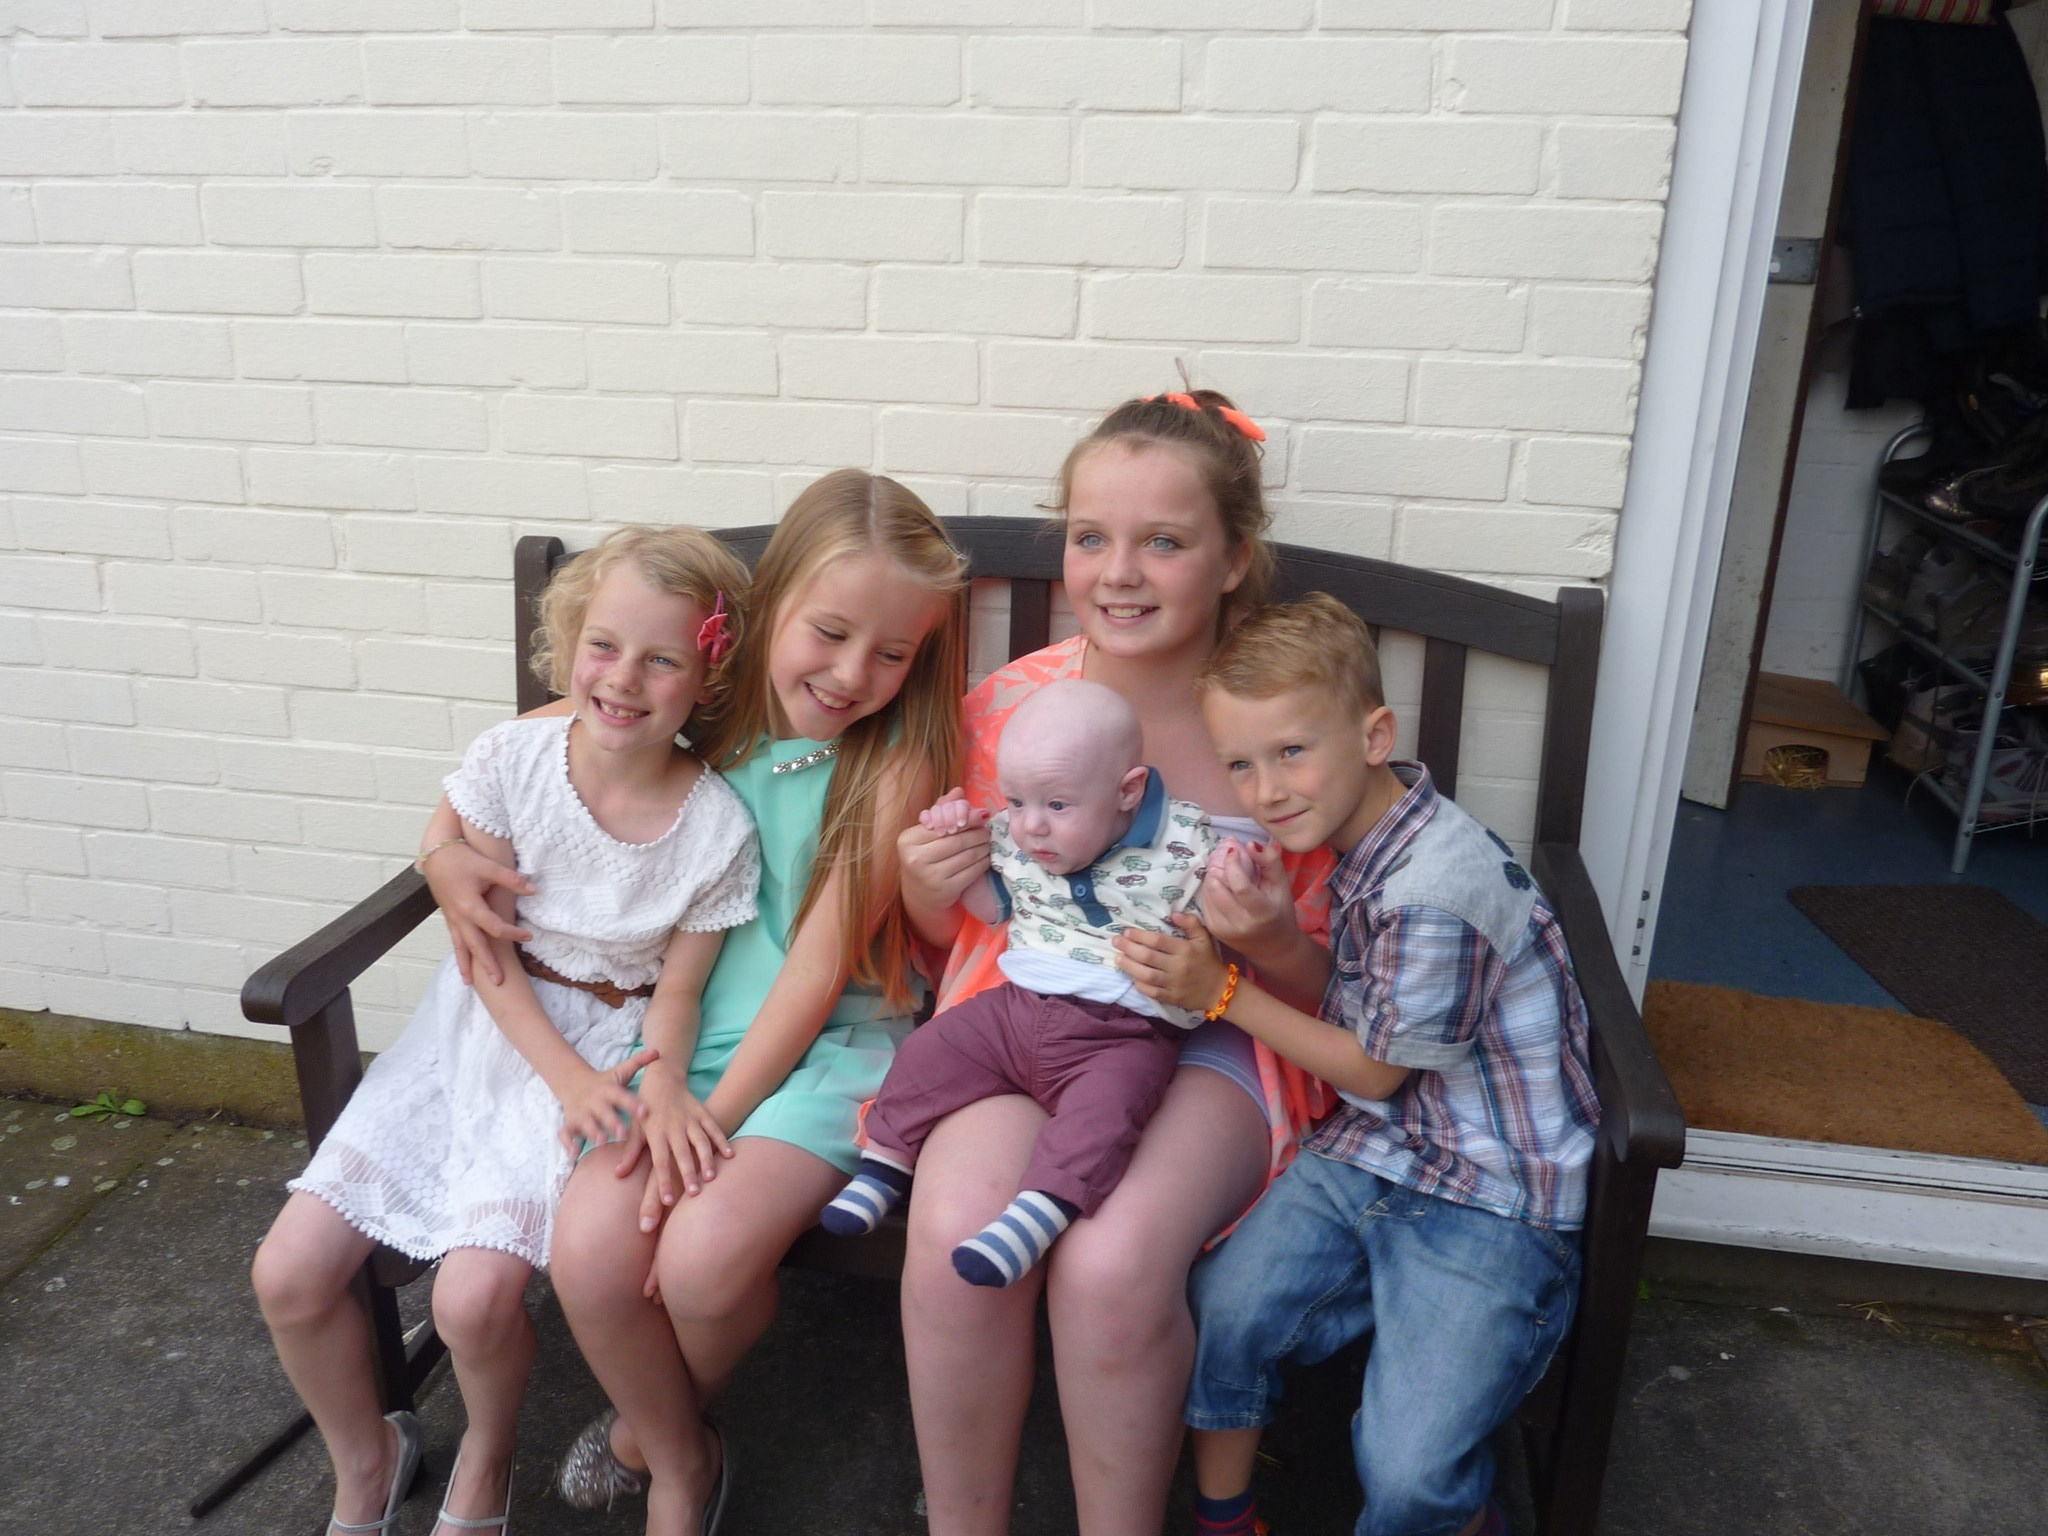 Elizabeth & Alice with their cousins Amelie, Luke and Archie. Elizabeth would always help out with her younger cousins who loved to play with her, she was a caring & kind hearted little girl with a beautifu smile.